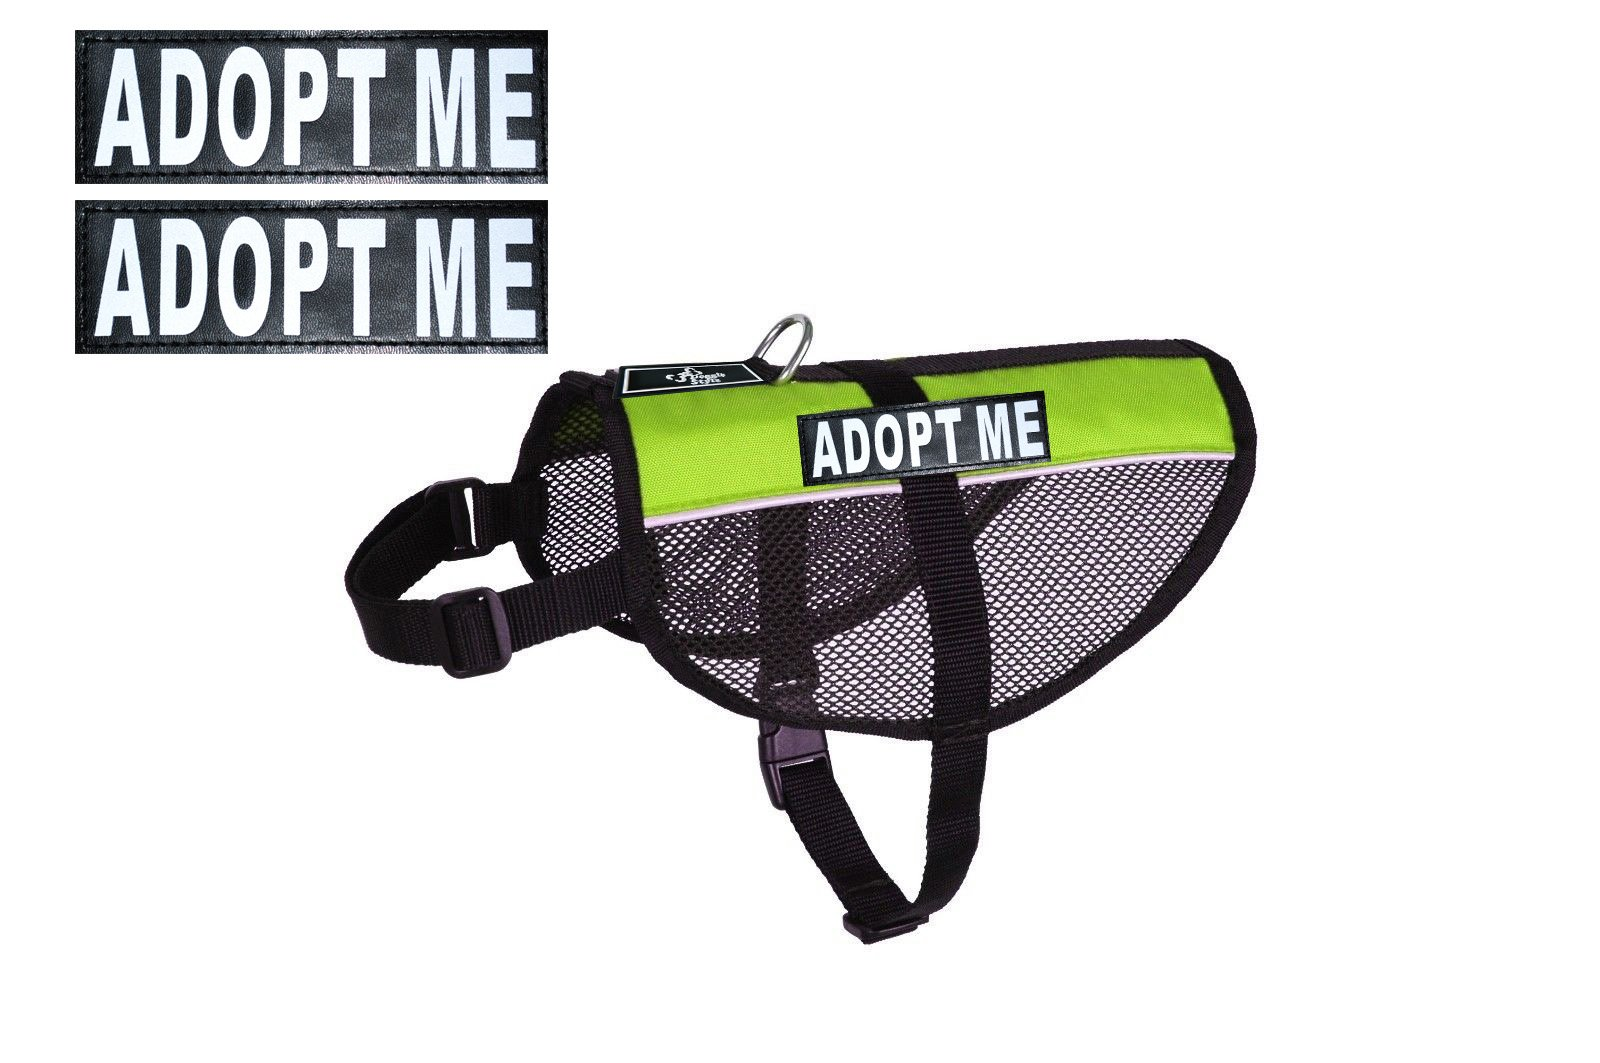 Adopt ME Service Dog mesh Vest Harness Cool Comfort Nylon for Dogs Small Medium Large Purchase Comes with 2 Reflective Adopt ME Patches. Please Measure Your Dog Before Ordering